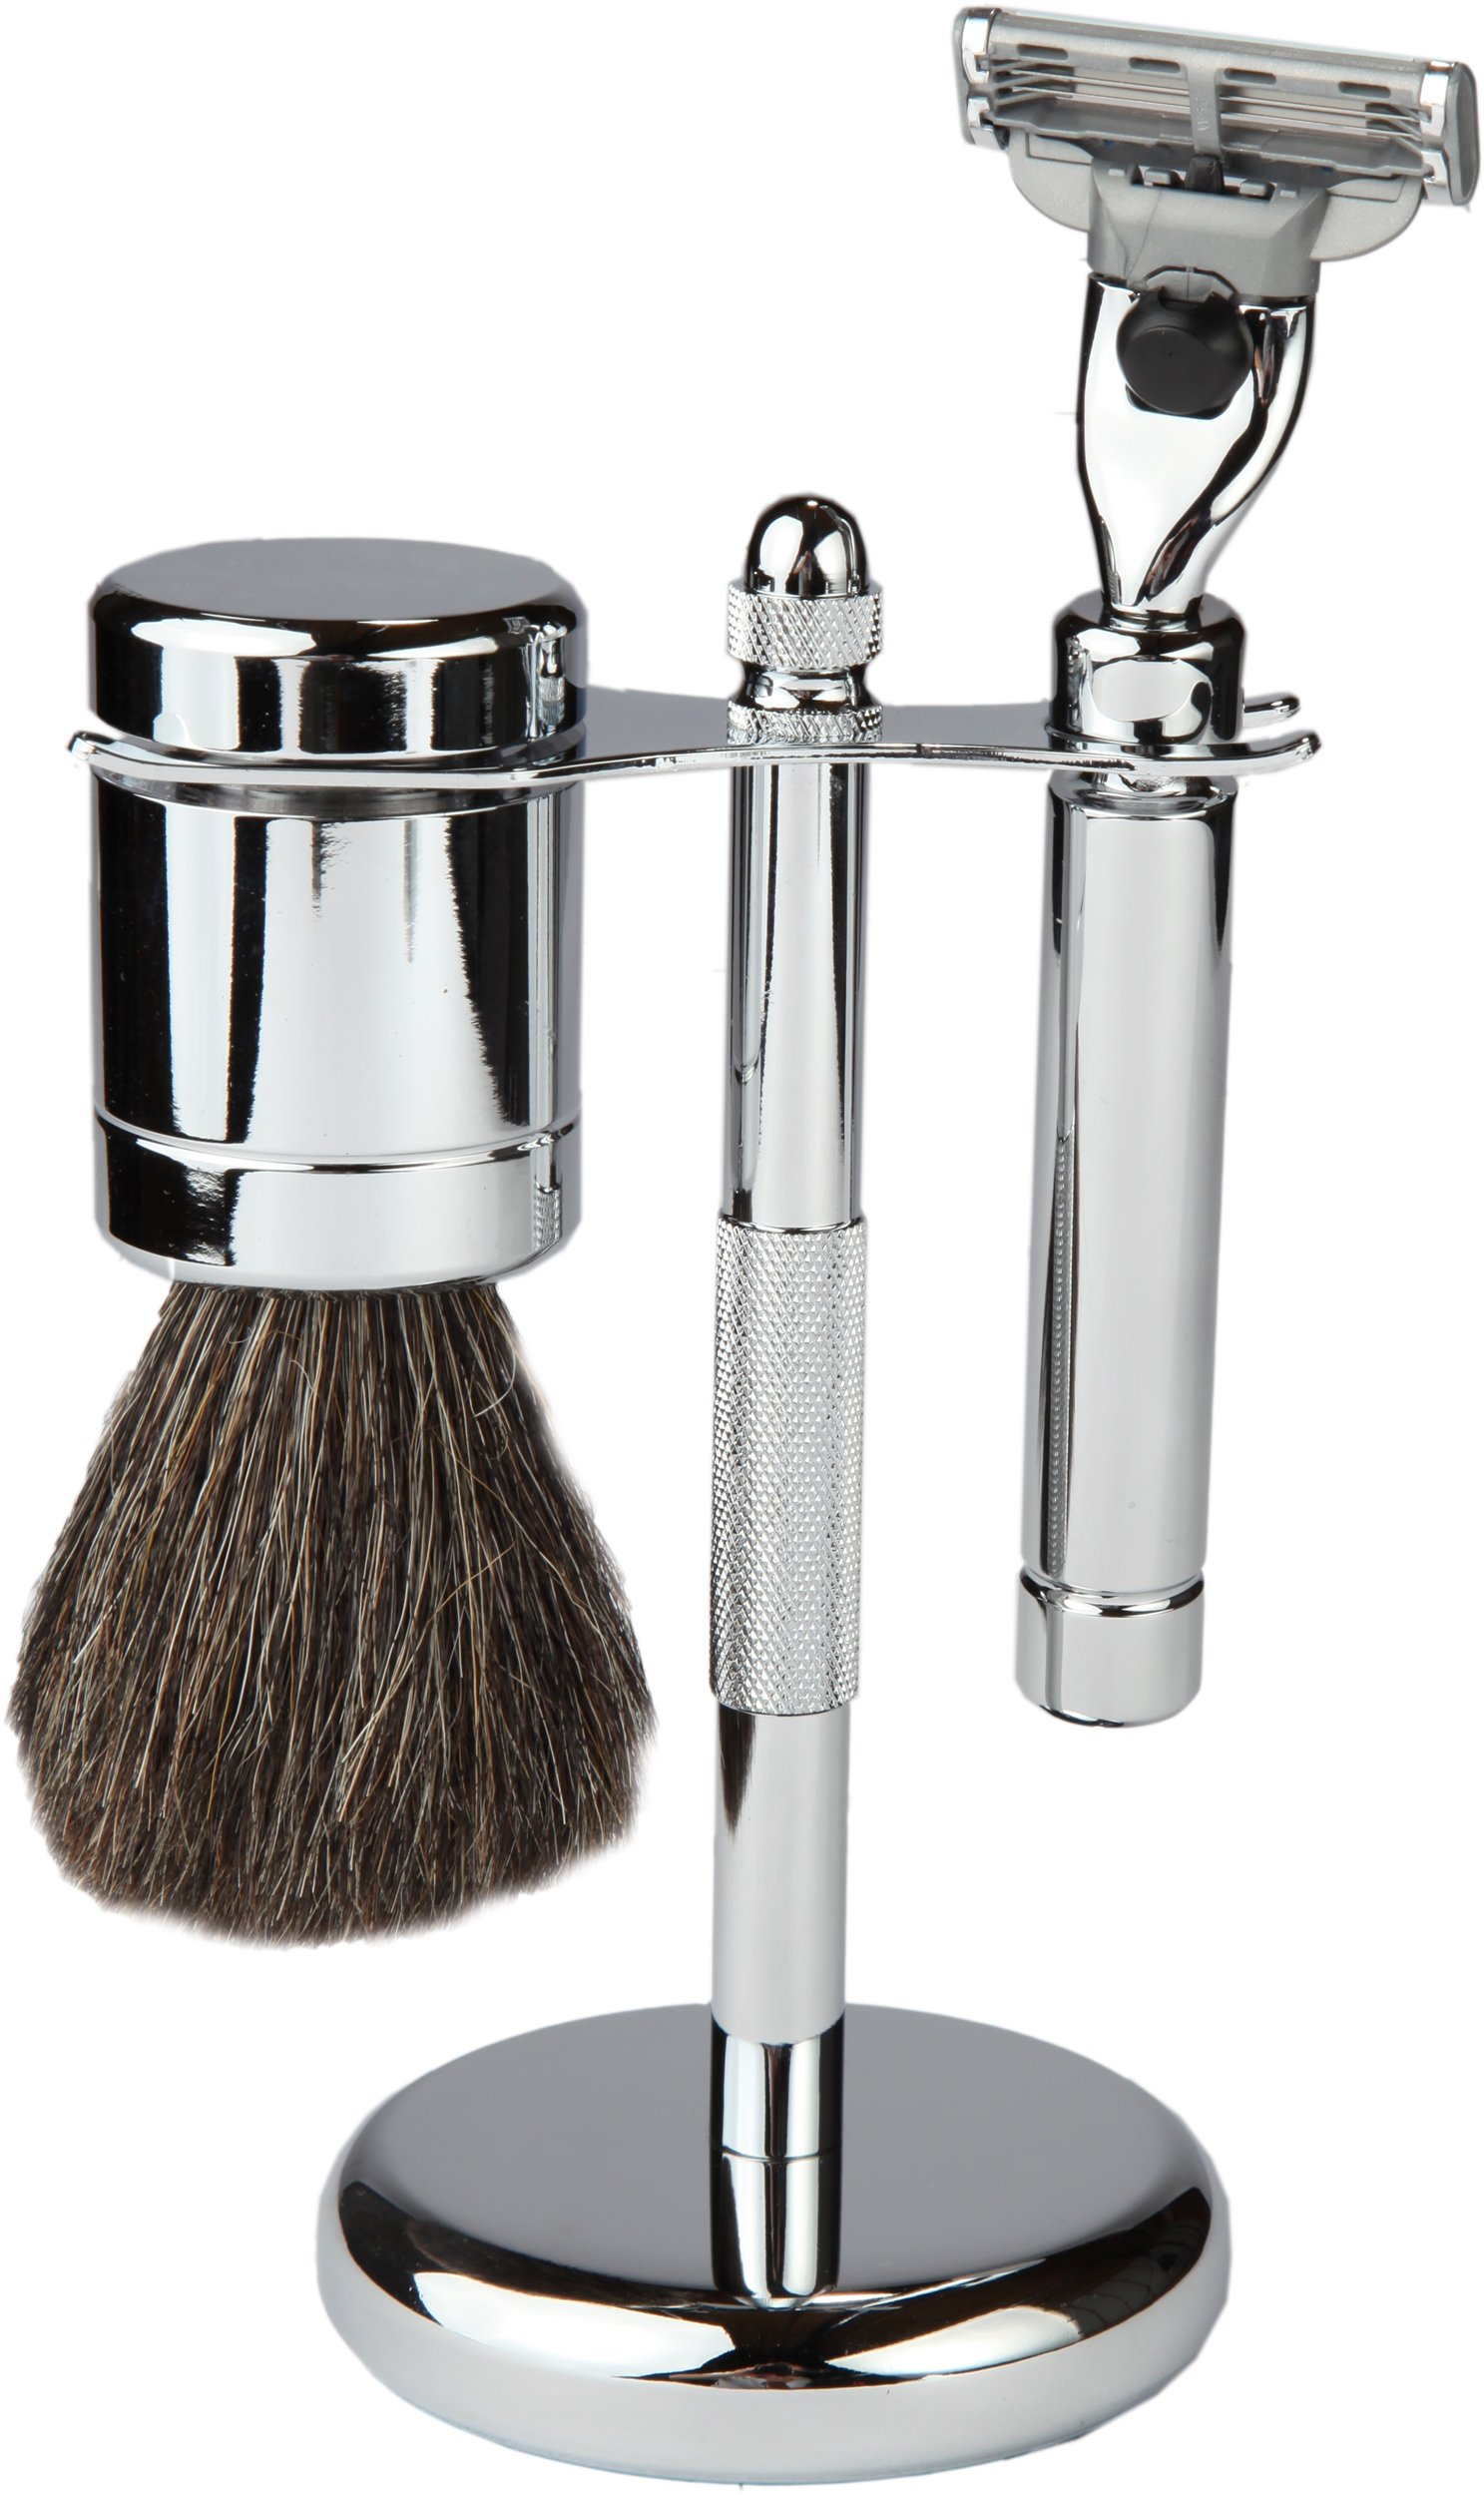 3 Piece Shaving Set With Mach 3 All Metal Heavyweight Handle and 100% All Metal Heavyweight Badger Brush, With All metal Chrome Textured Stand